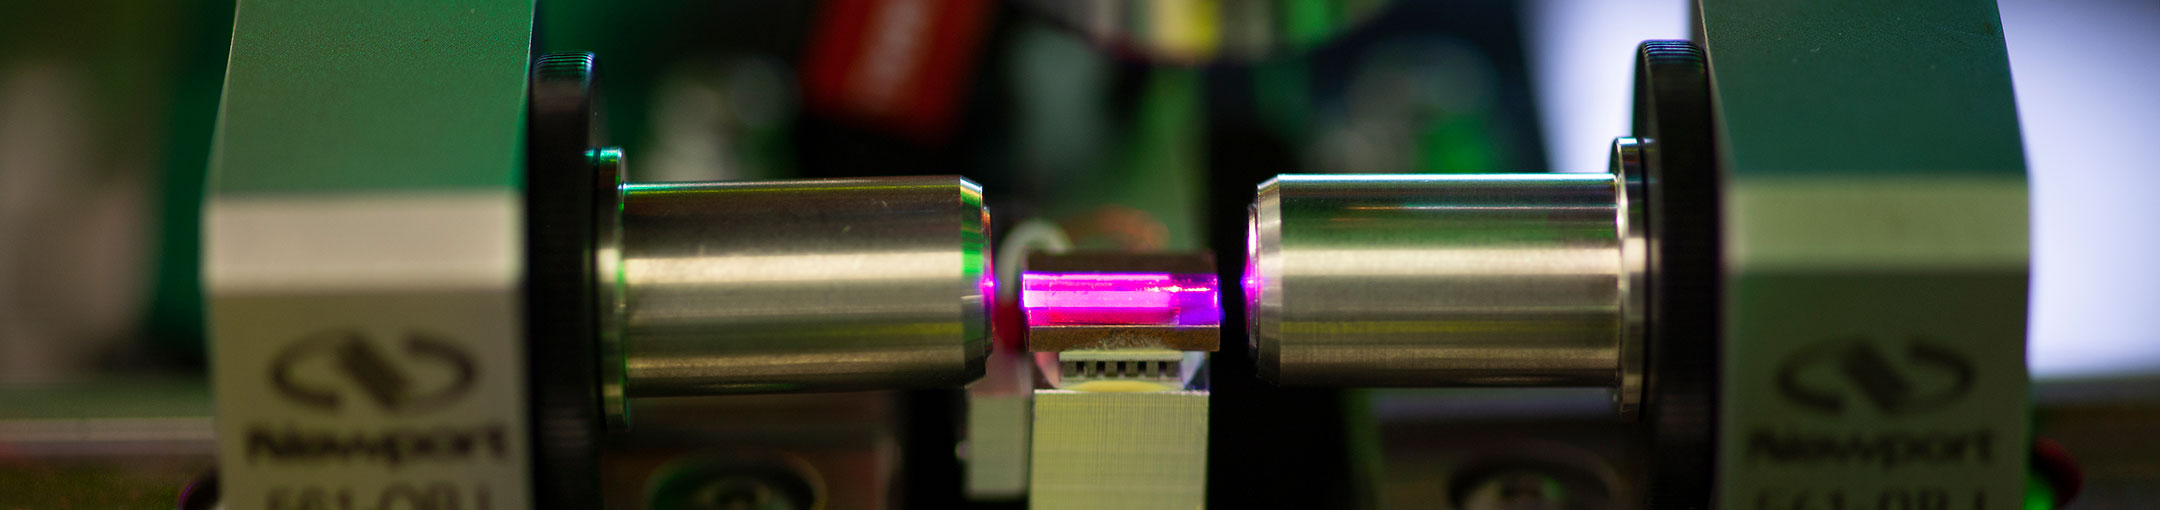 an electronic device emitting a pink light